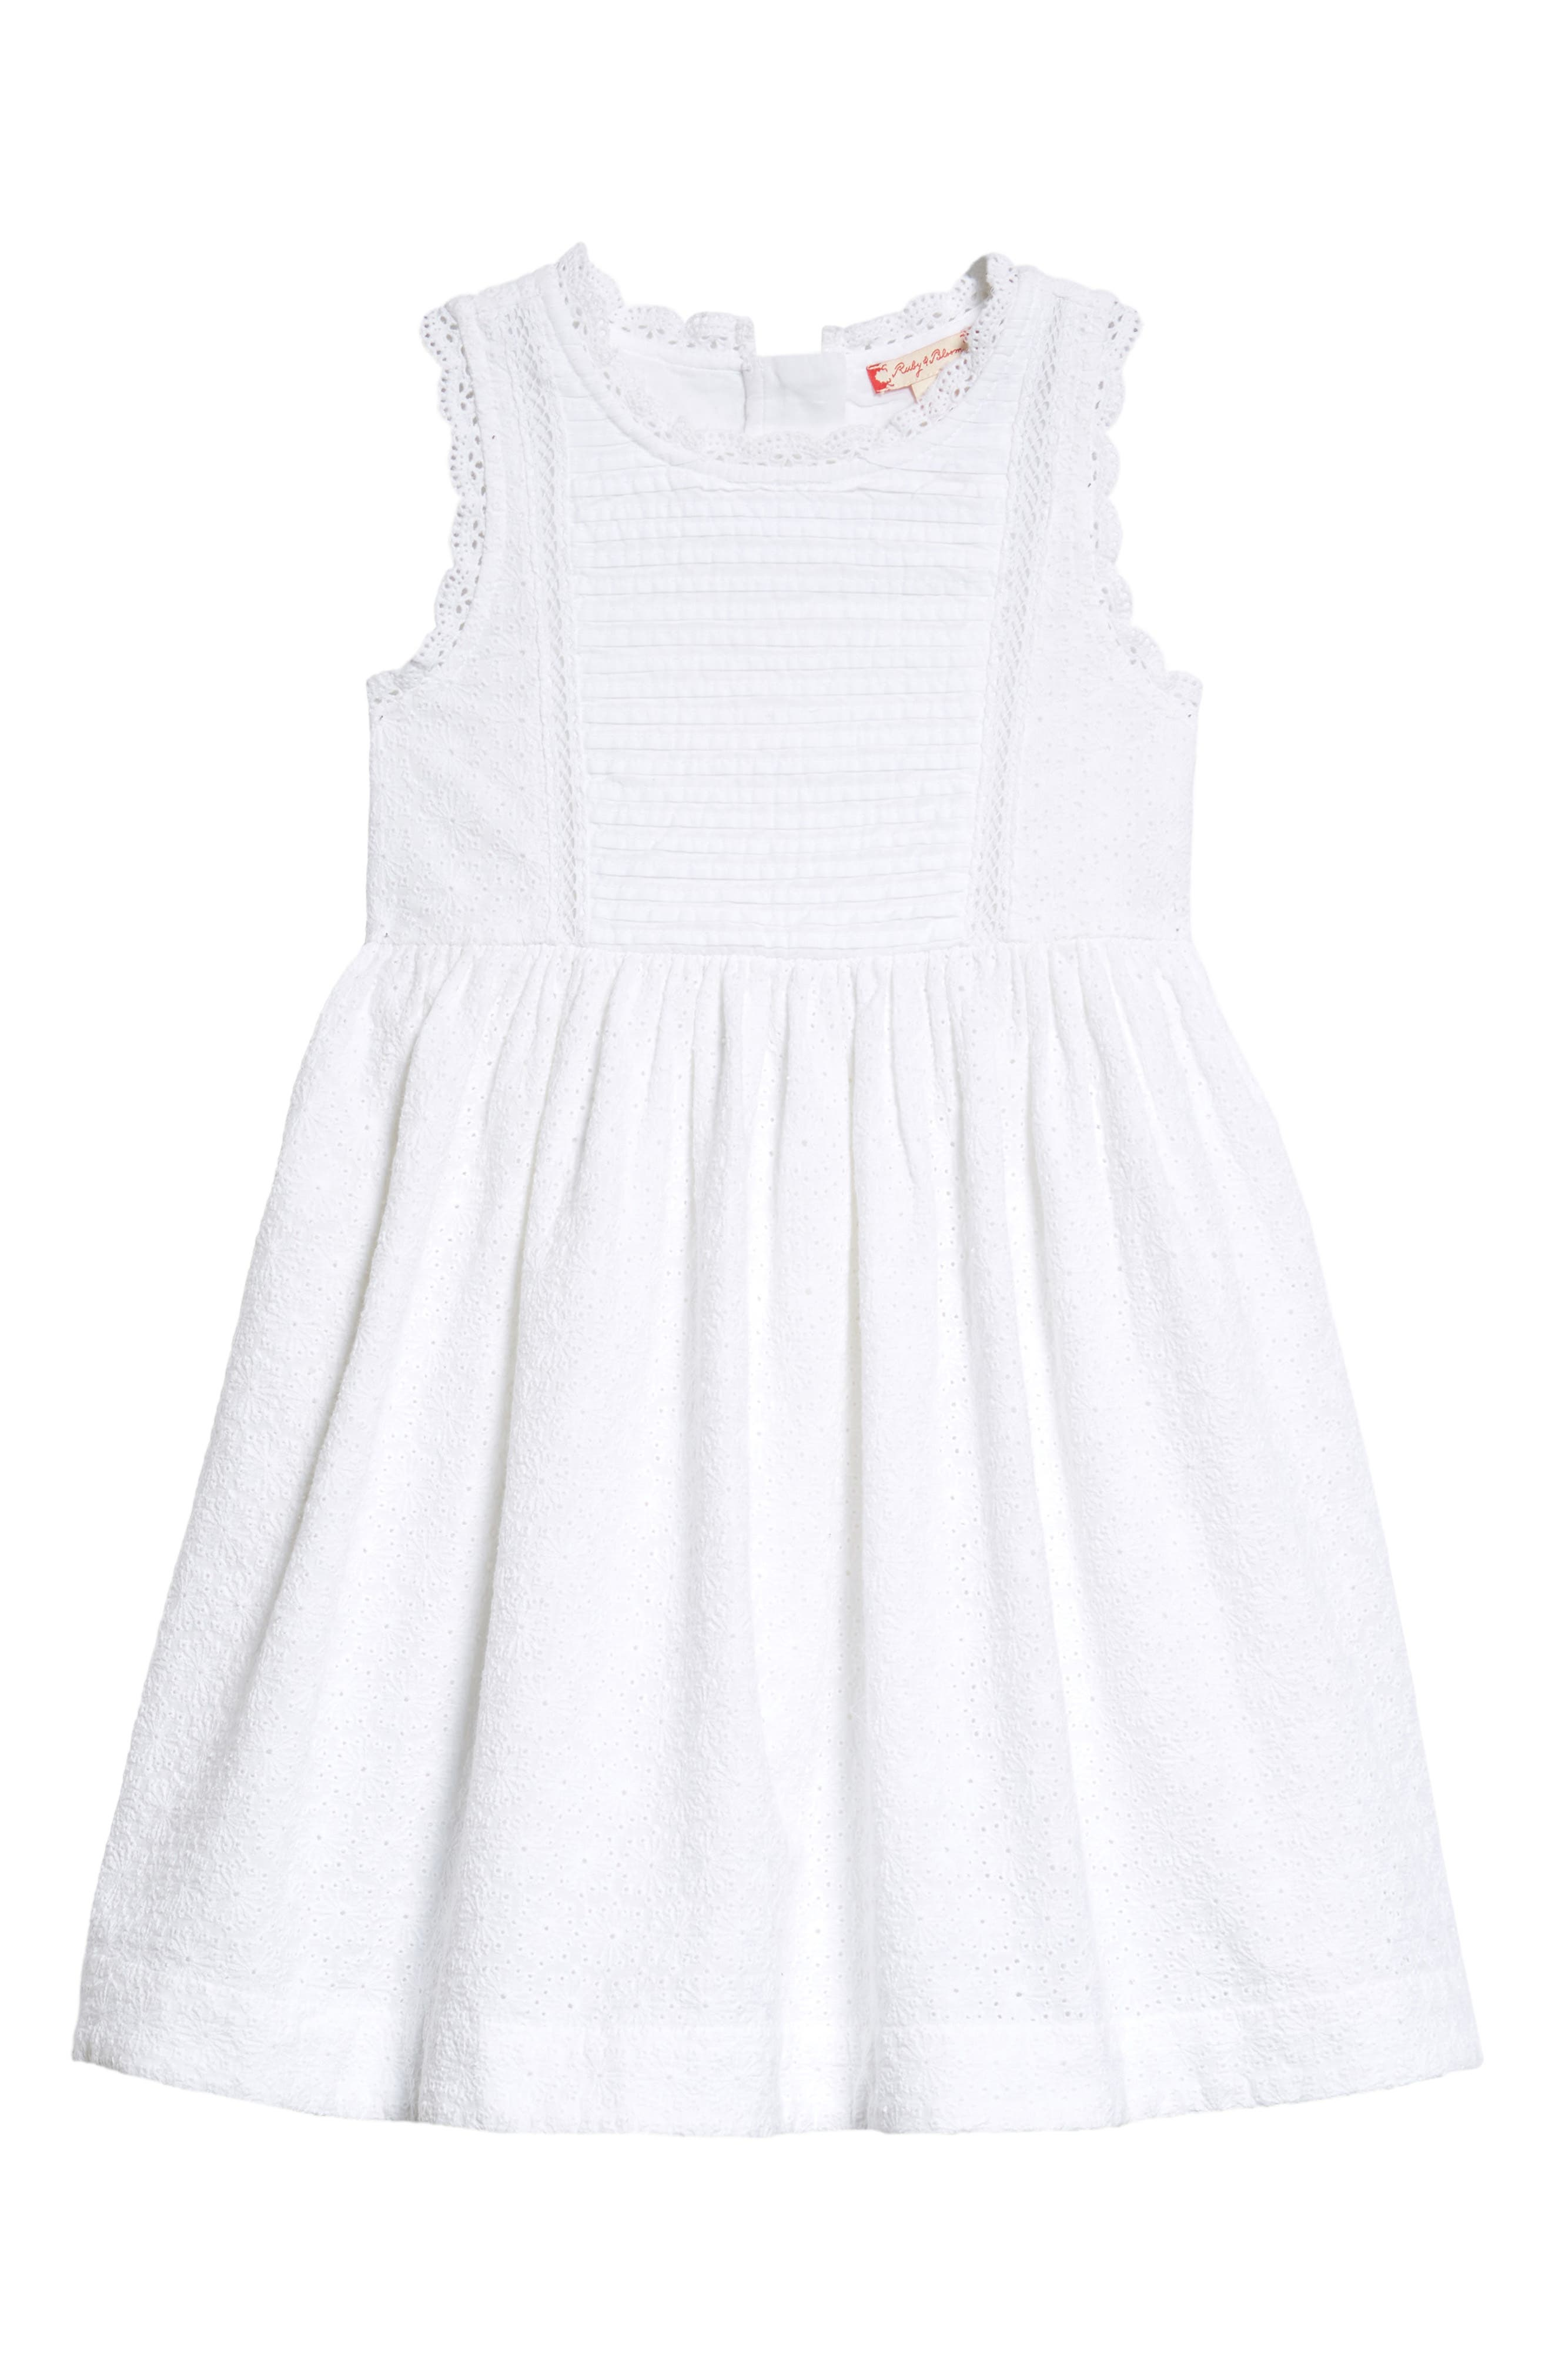 Ruby & Bloom Lace Shift Dress (Toddler Girls, Little Girls & Big Girls)